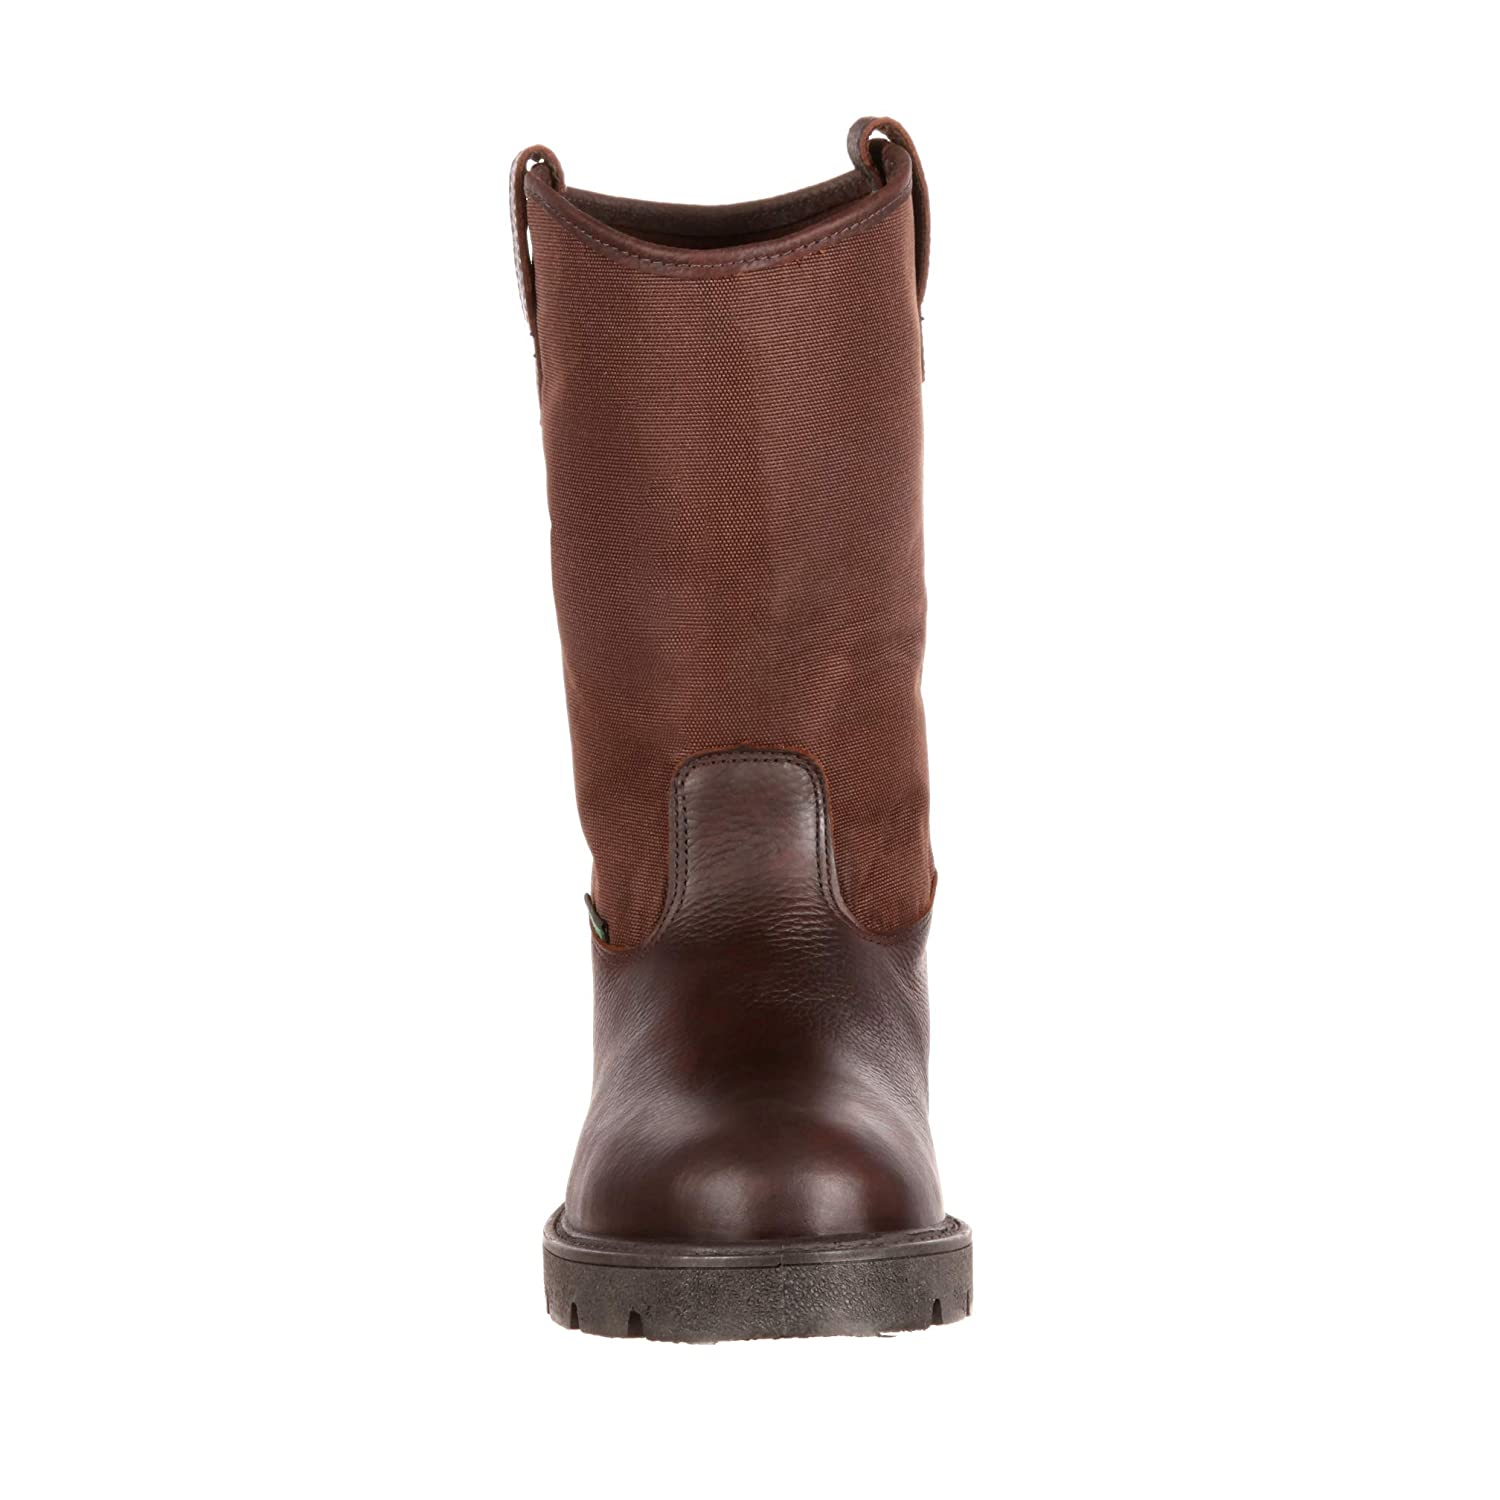 Georgia Mens 11 Homeland Waterproof Wellington Boot-G113 Brown M9